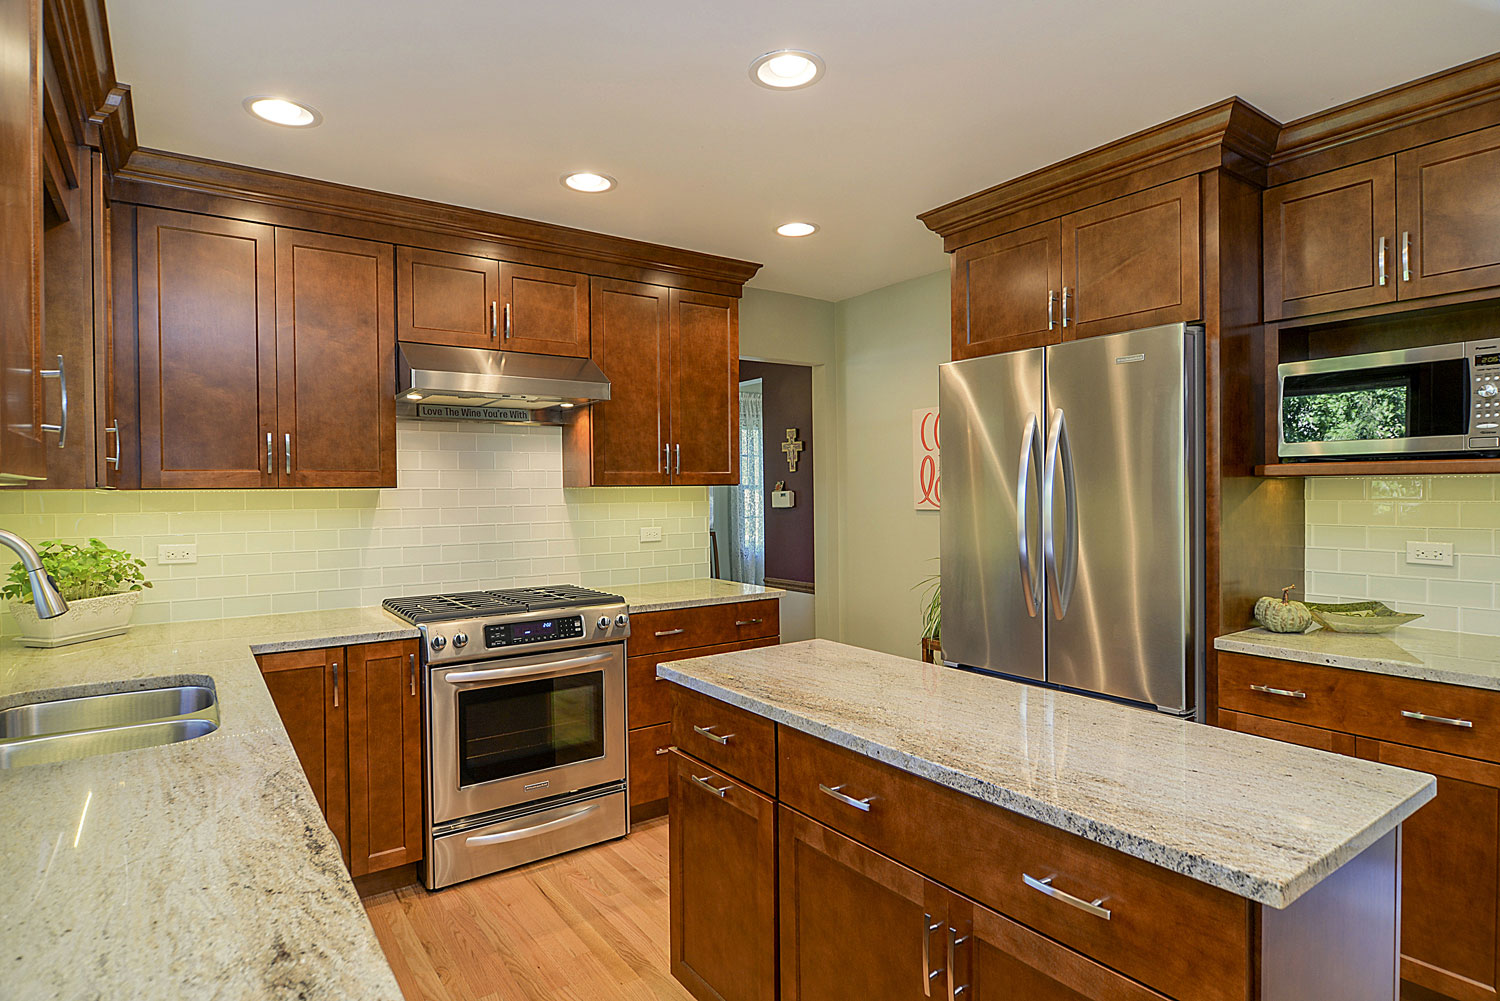 kitchen design naperville.  Kitchen Remodeling Ideas wood Cabinetry light Granite Aurora Naperville IL Illinois Sebring Services Gregory Barbara s Remodel Pictures Home